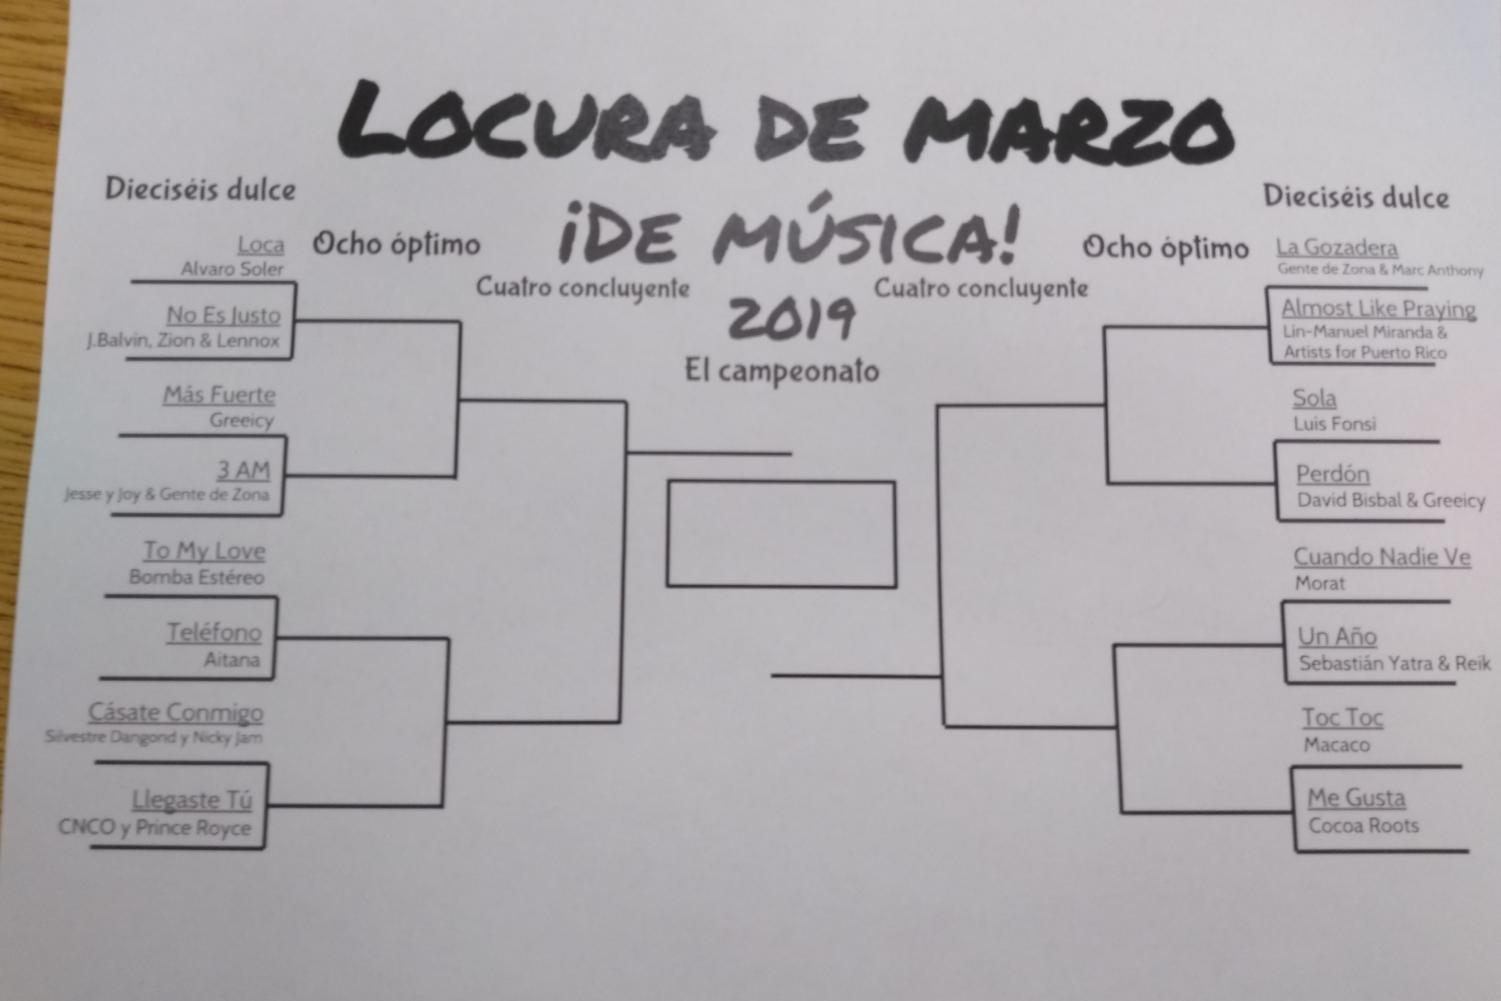 A bracket set up for Locura de Marzo by Spanish teacher Mrs. Green.